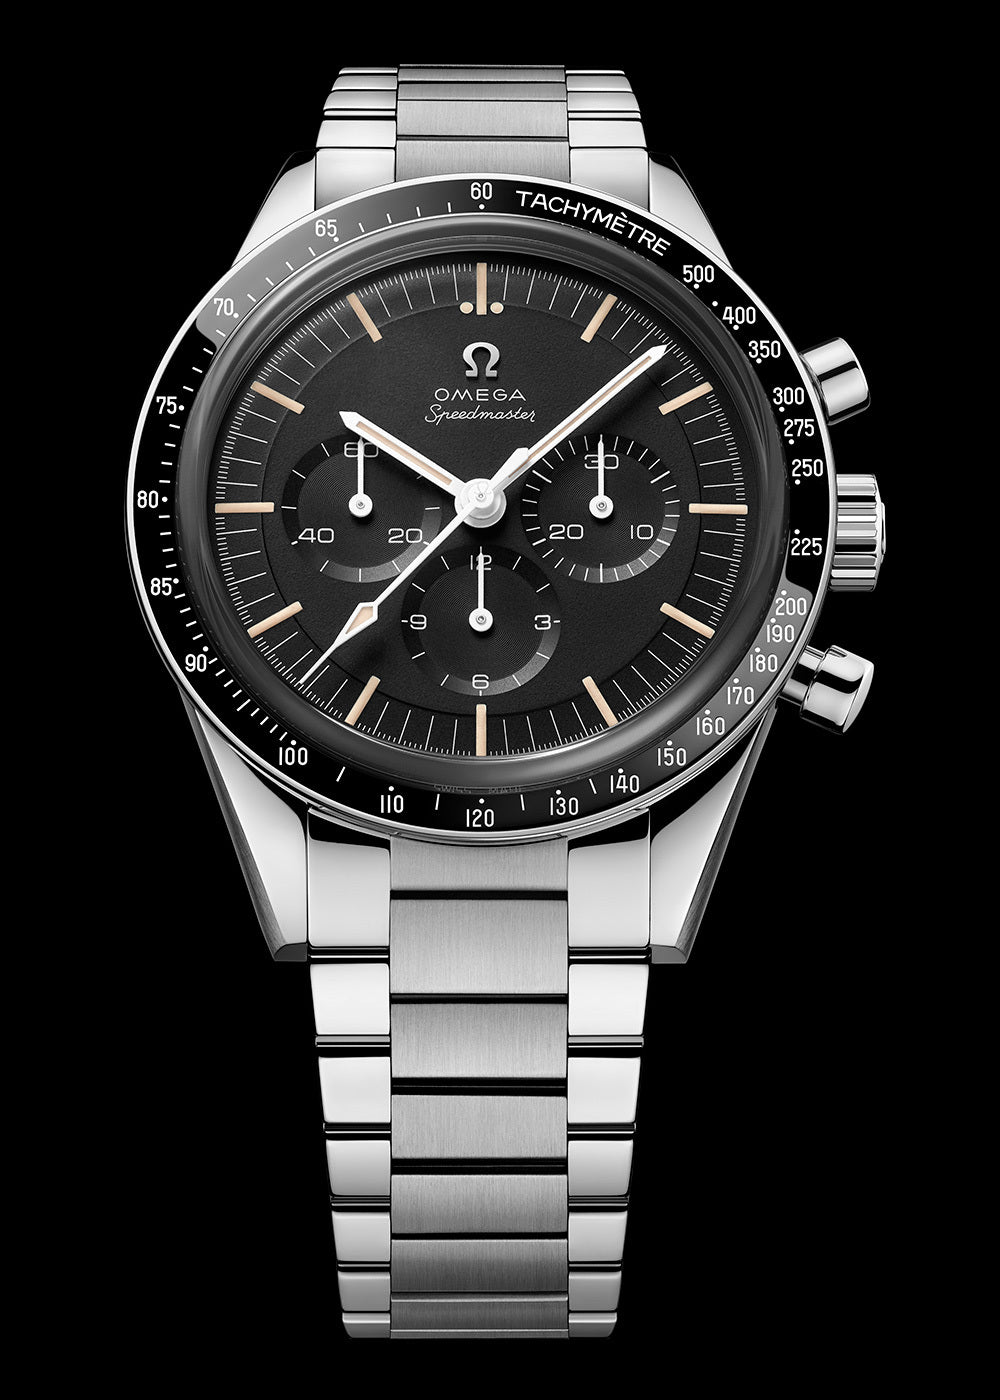 THE 321 POWERS ON! OMEGA's legendary Calibre is the driving force behind another Moonwatch – This time in Steel.